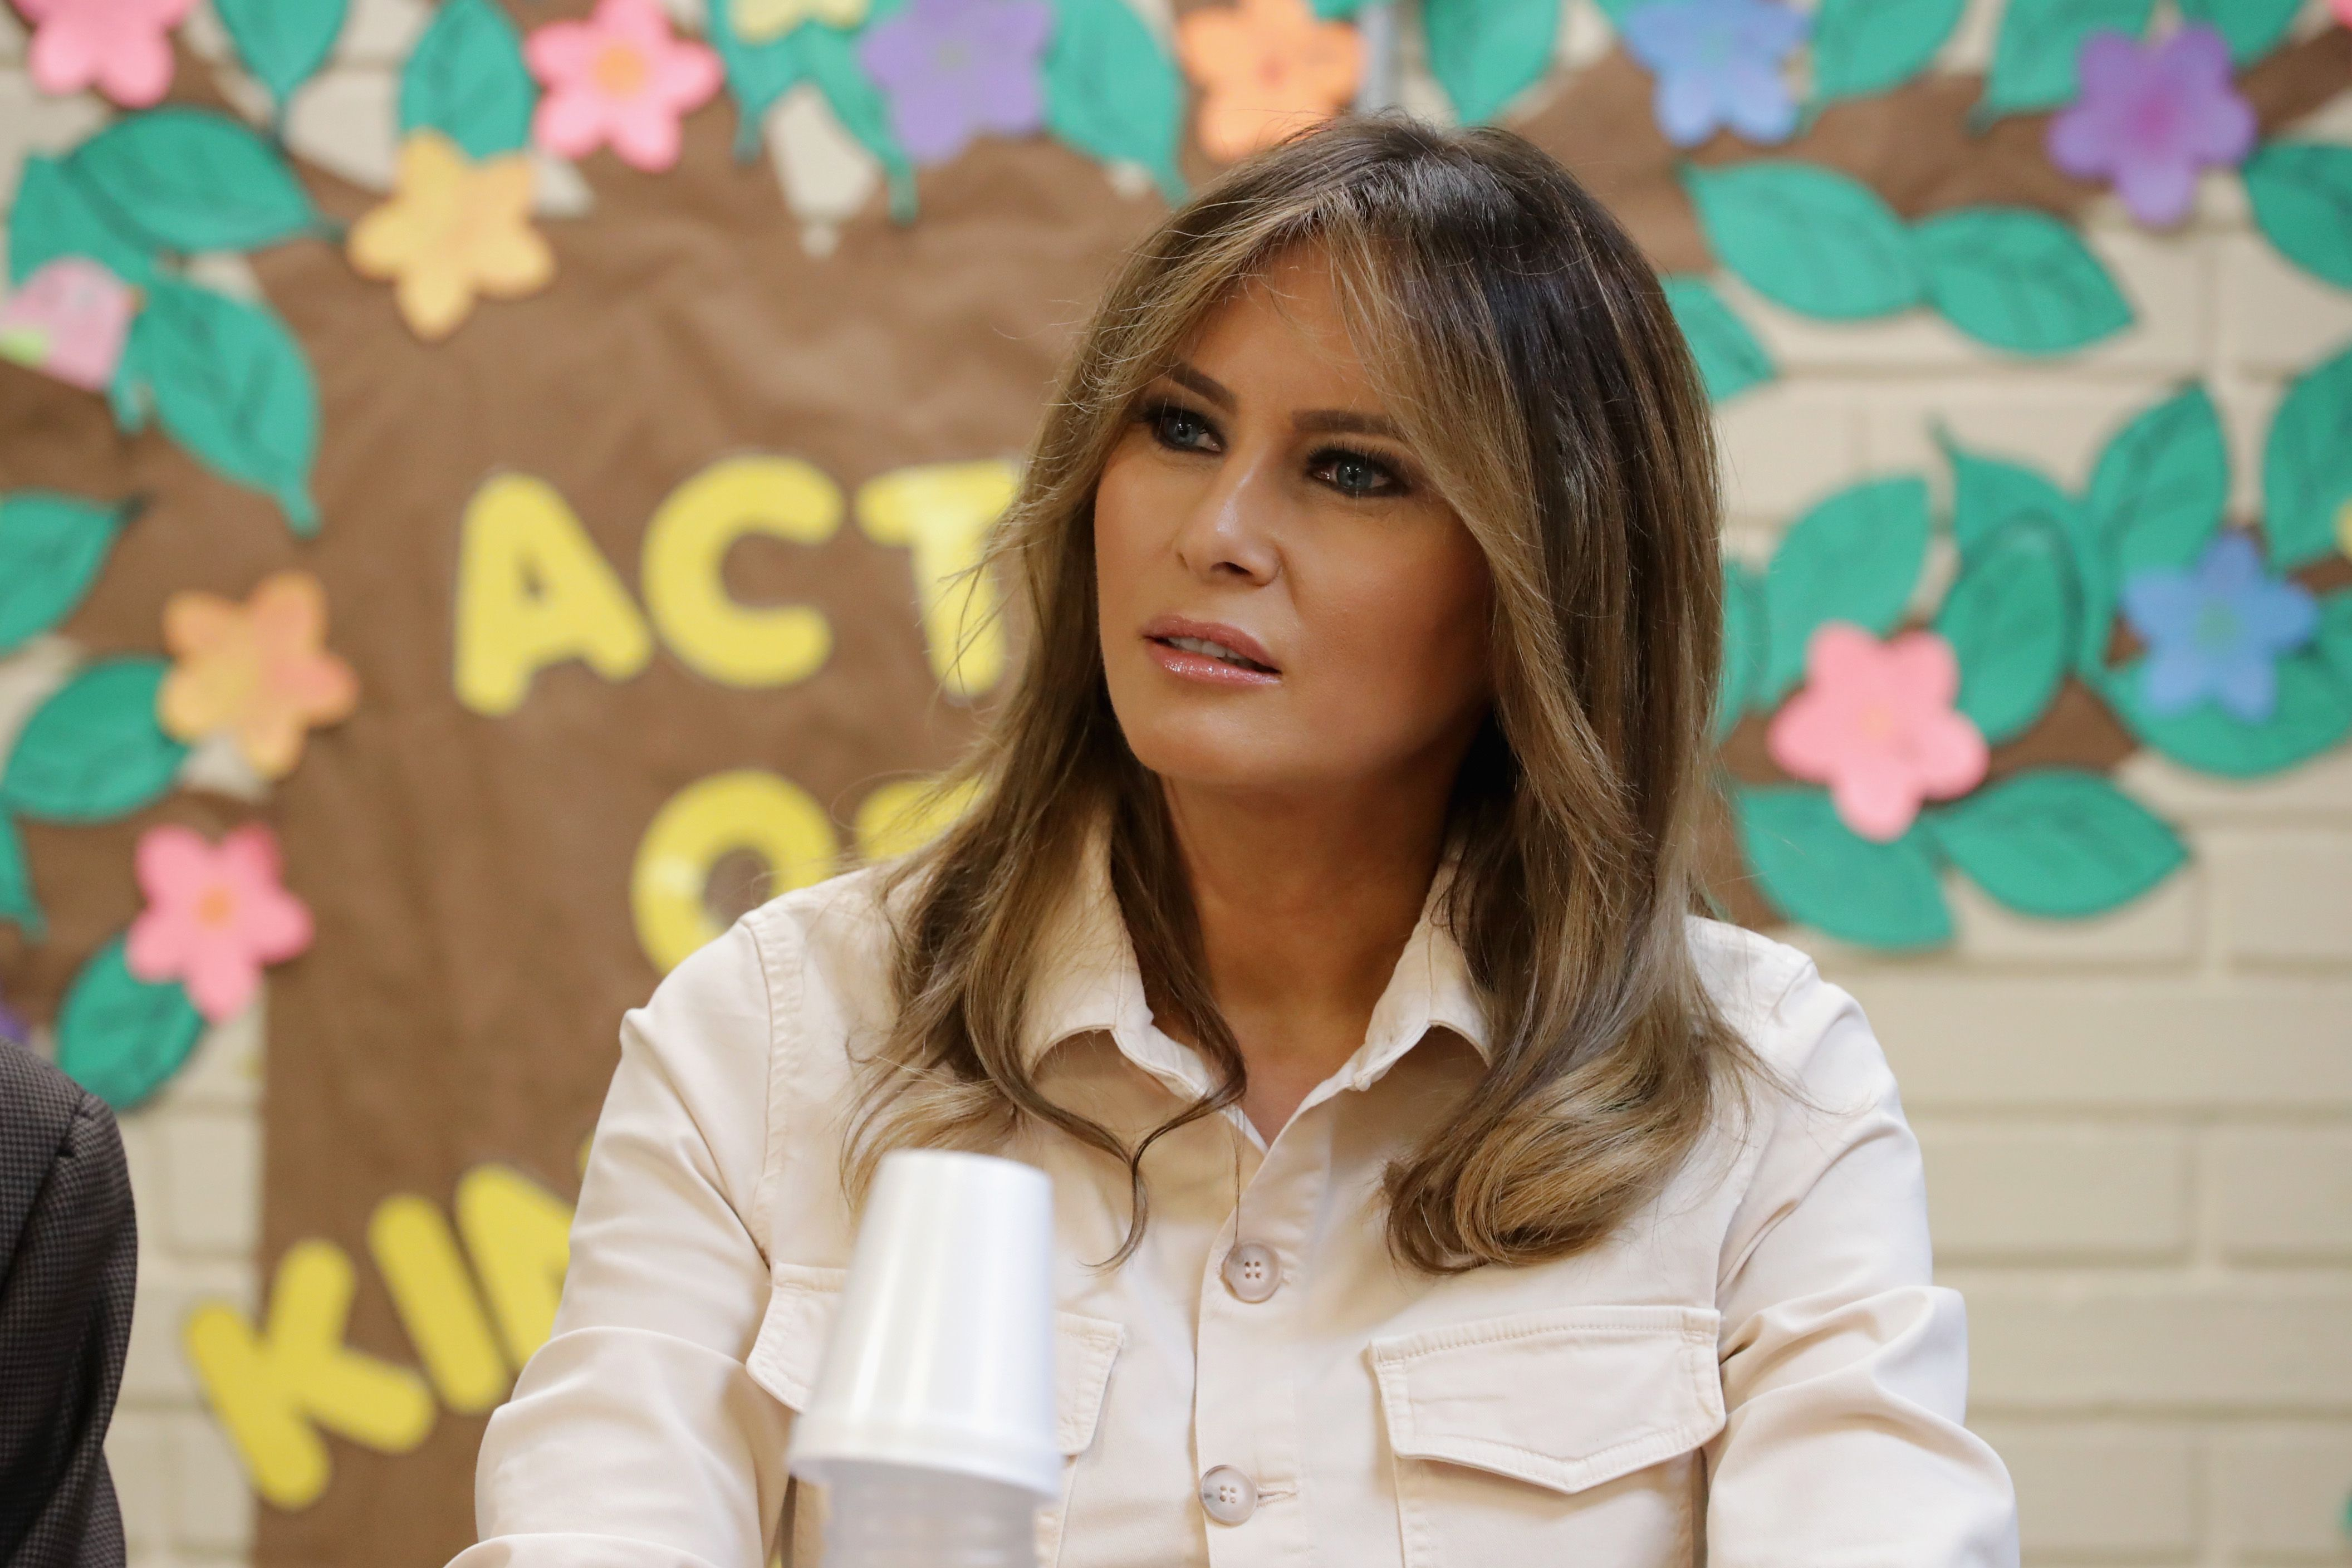 Melania Trump Said Children Detained at the Border Are